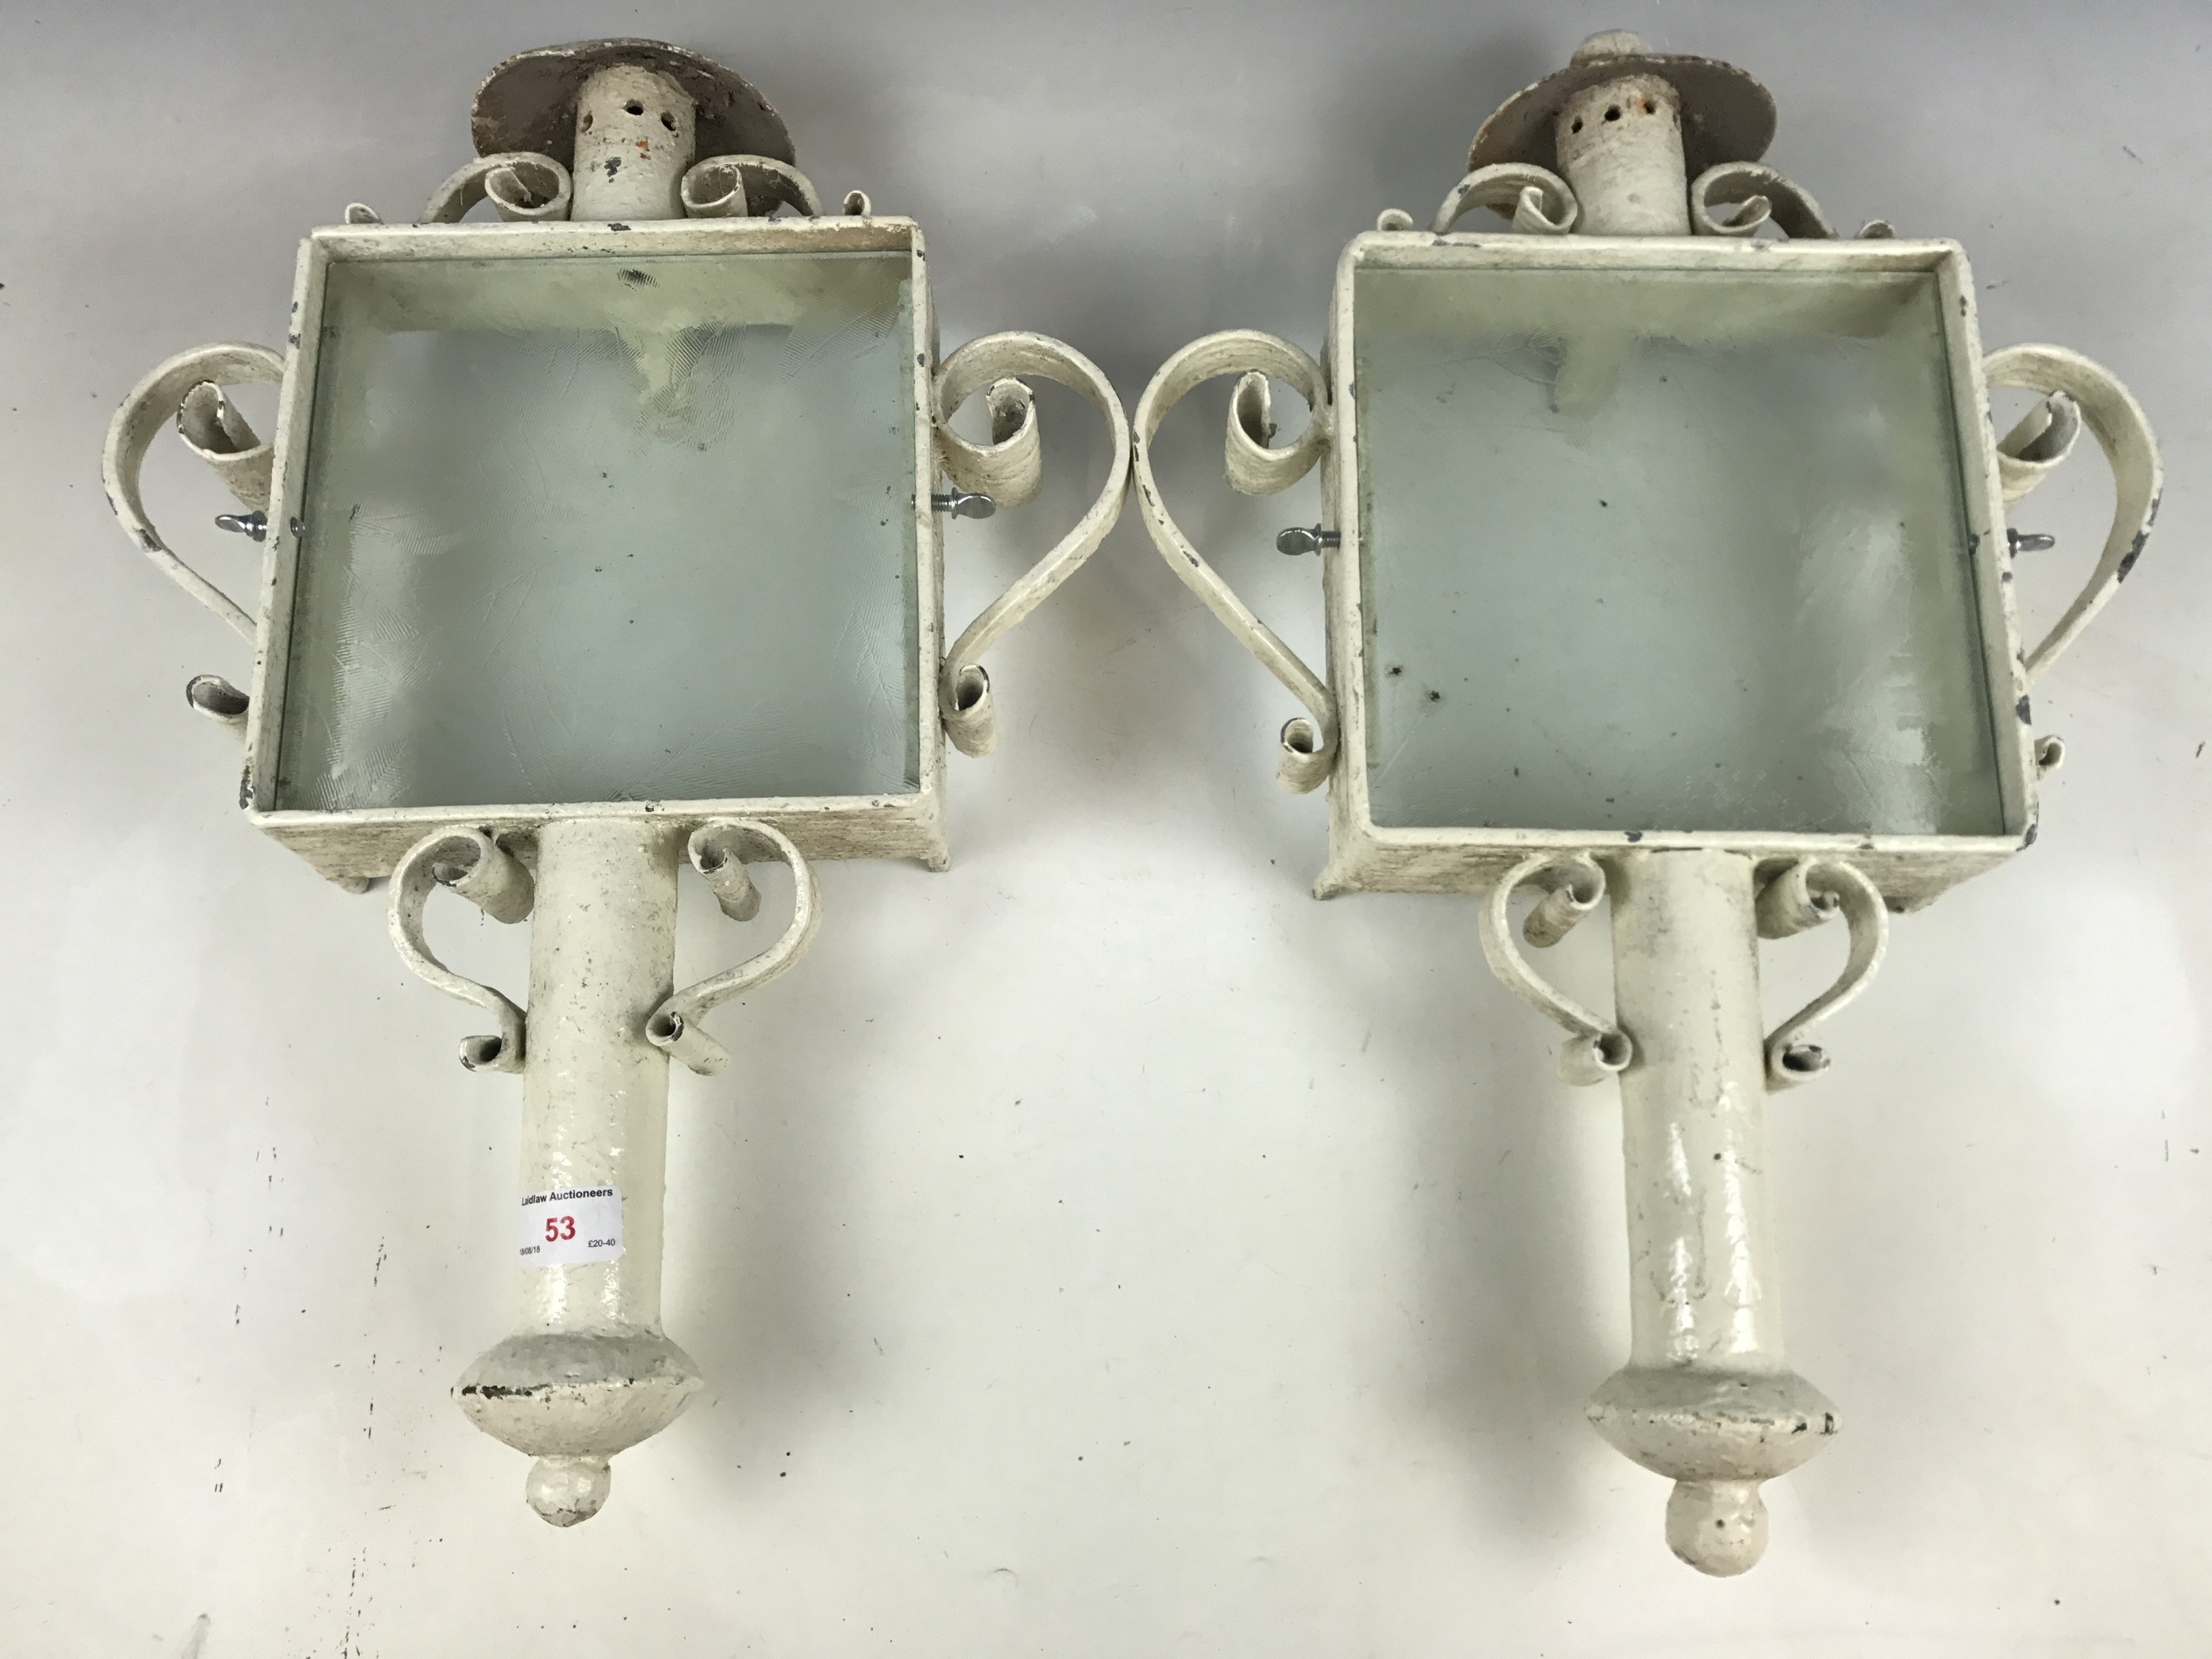 Lot 53 - Two wrought-iron and glass exterior light sconces